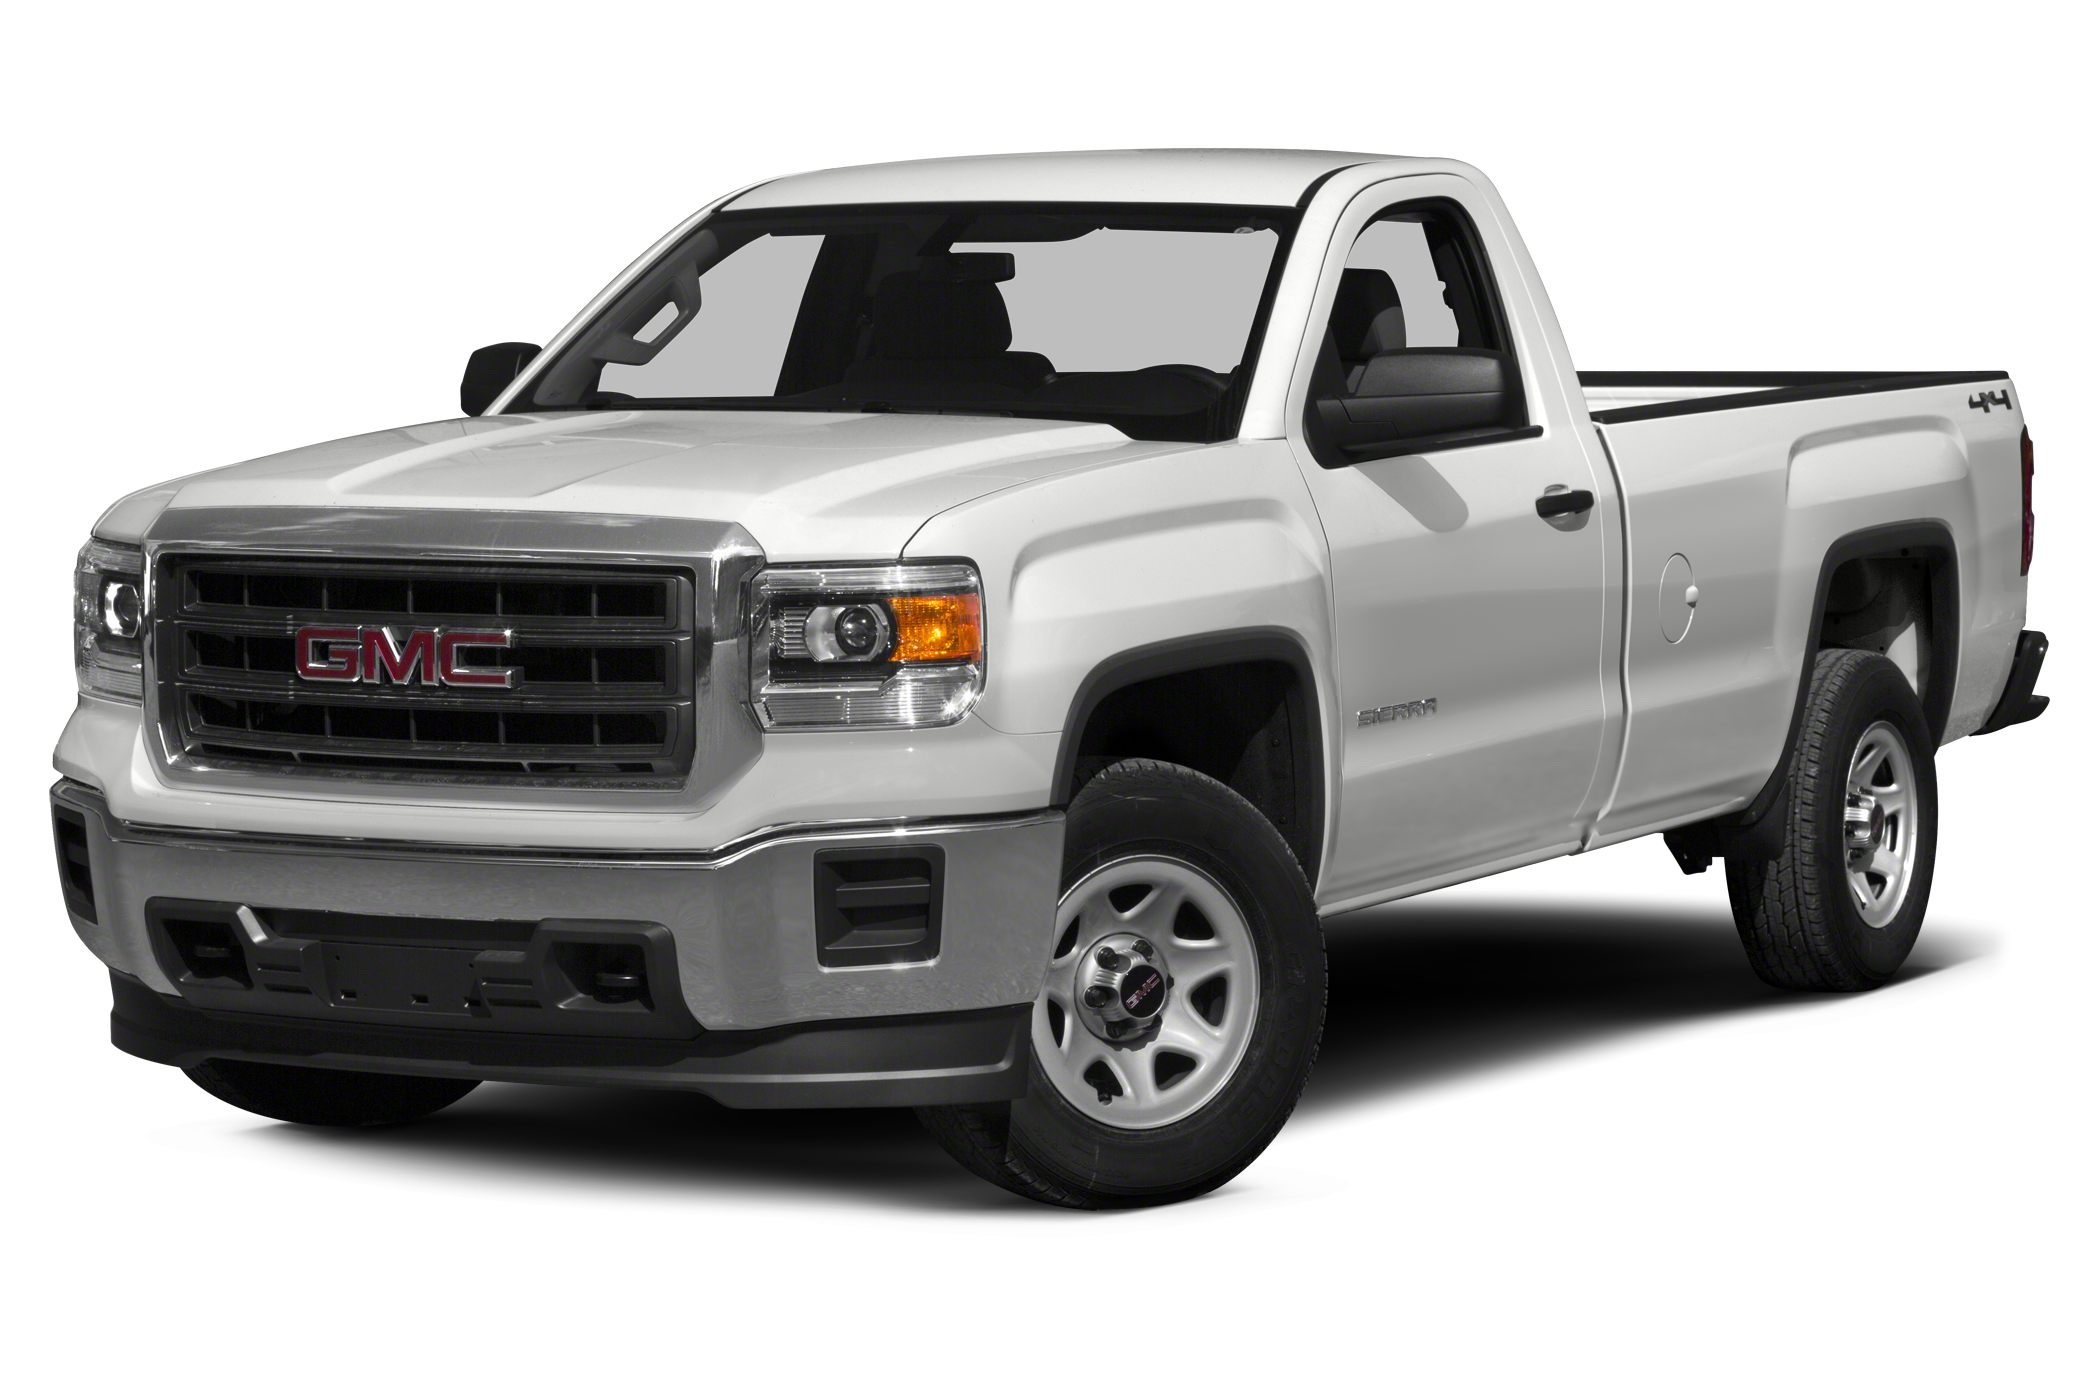 2015 Gmc Sierra 1500 Base 4x2 Regular Cab 8 Ft Box 133 In Wb Specs And Prices